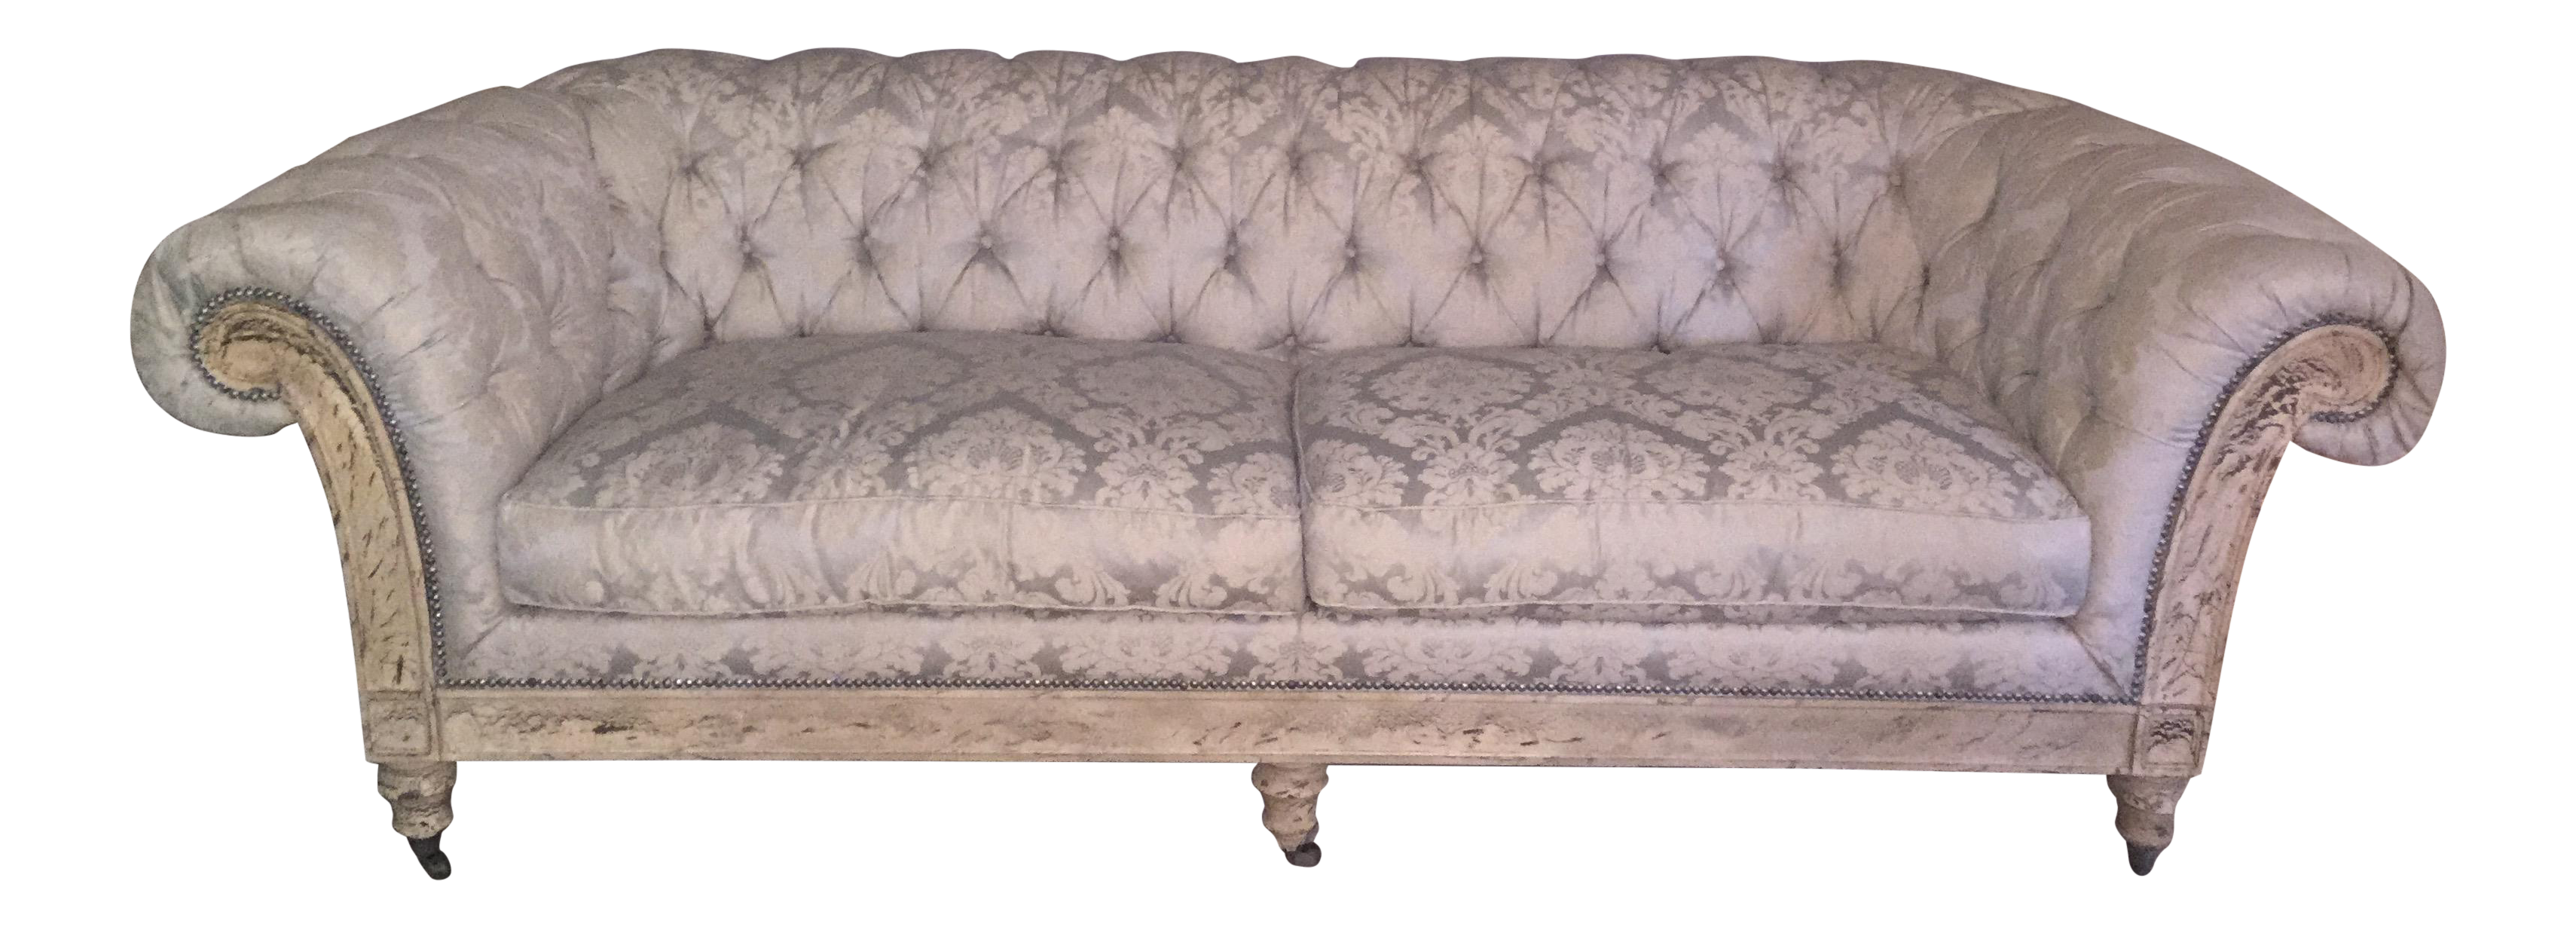 d1929331cb43 Gorgeous Lillian August Chesterfield Down Tufted Sofa Damask Silver Blue  Ivory   Chairish